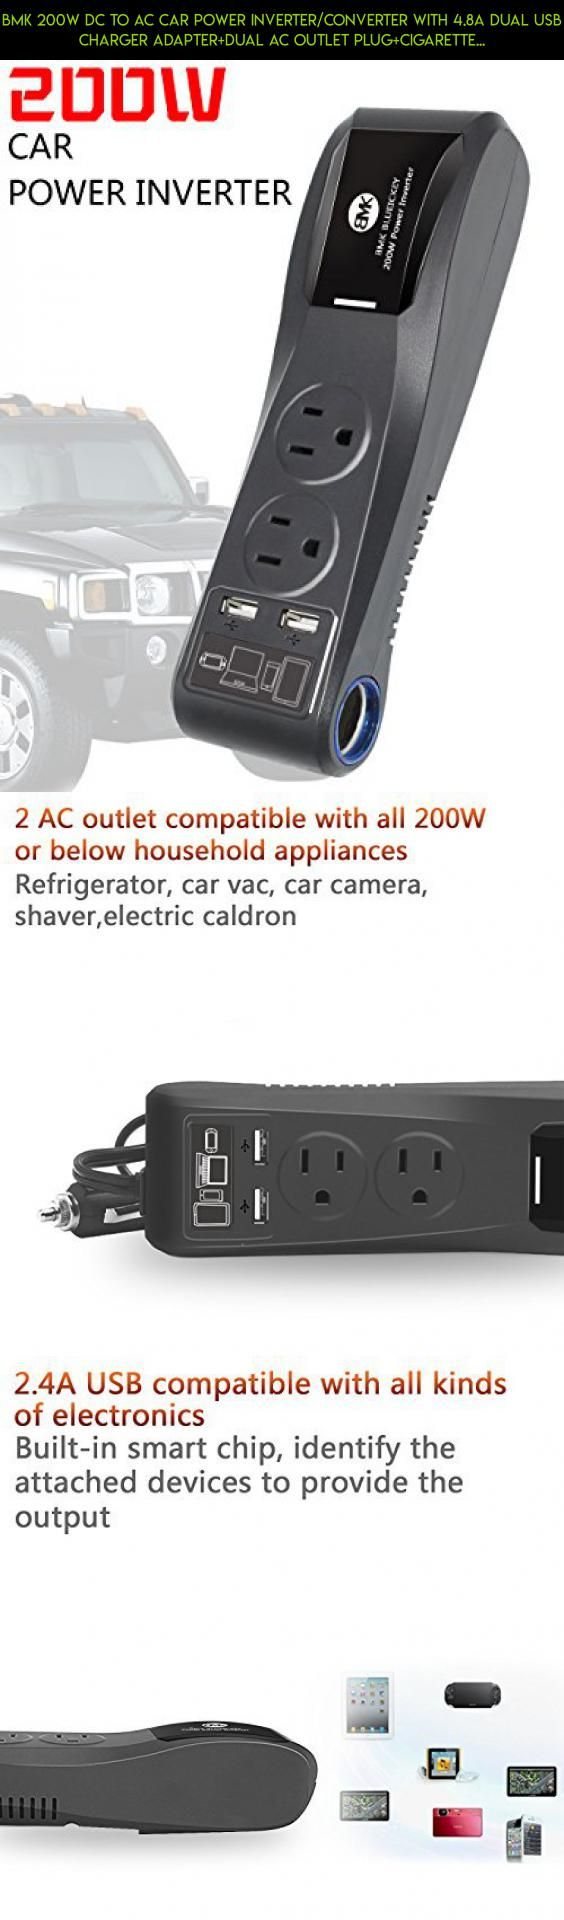 BMK 200W DC to AC Car Power Inverter/Converter with 4.8A Dual USB Charger Adapter+Dual AC Outlet Plug+Cigarette Lighter for Car/Truck/Travel #technology #parts #drone #tech #camera #car #kit #storage #products #shopping #racing #a #gadgets #plans #battery #fpv